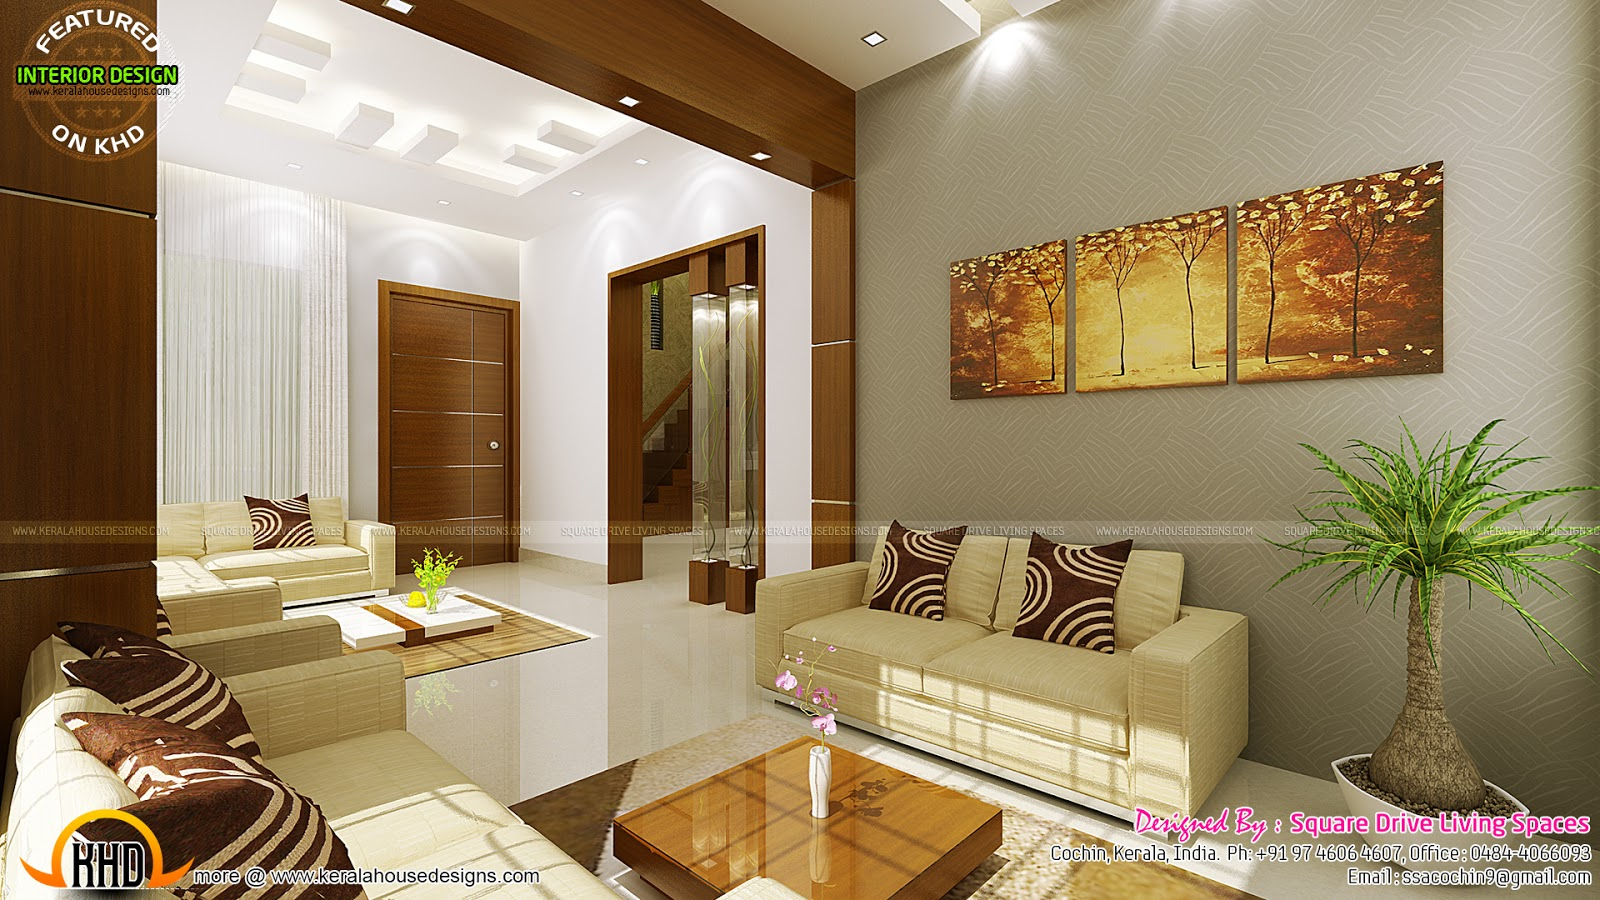 Contemporary kitchen dining and living room kerala home for House design photos interior design